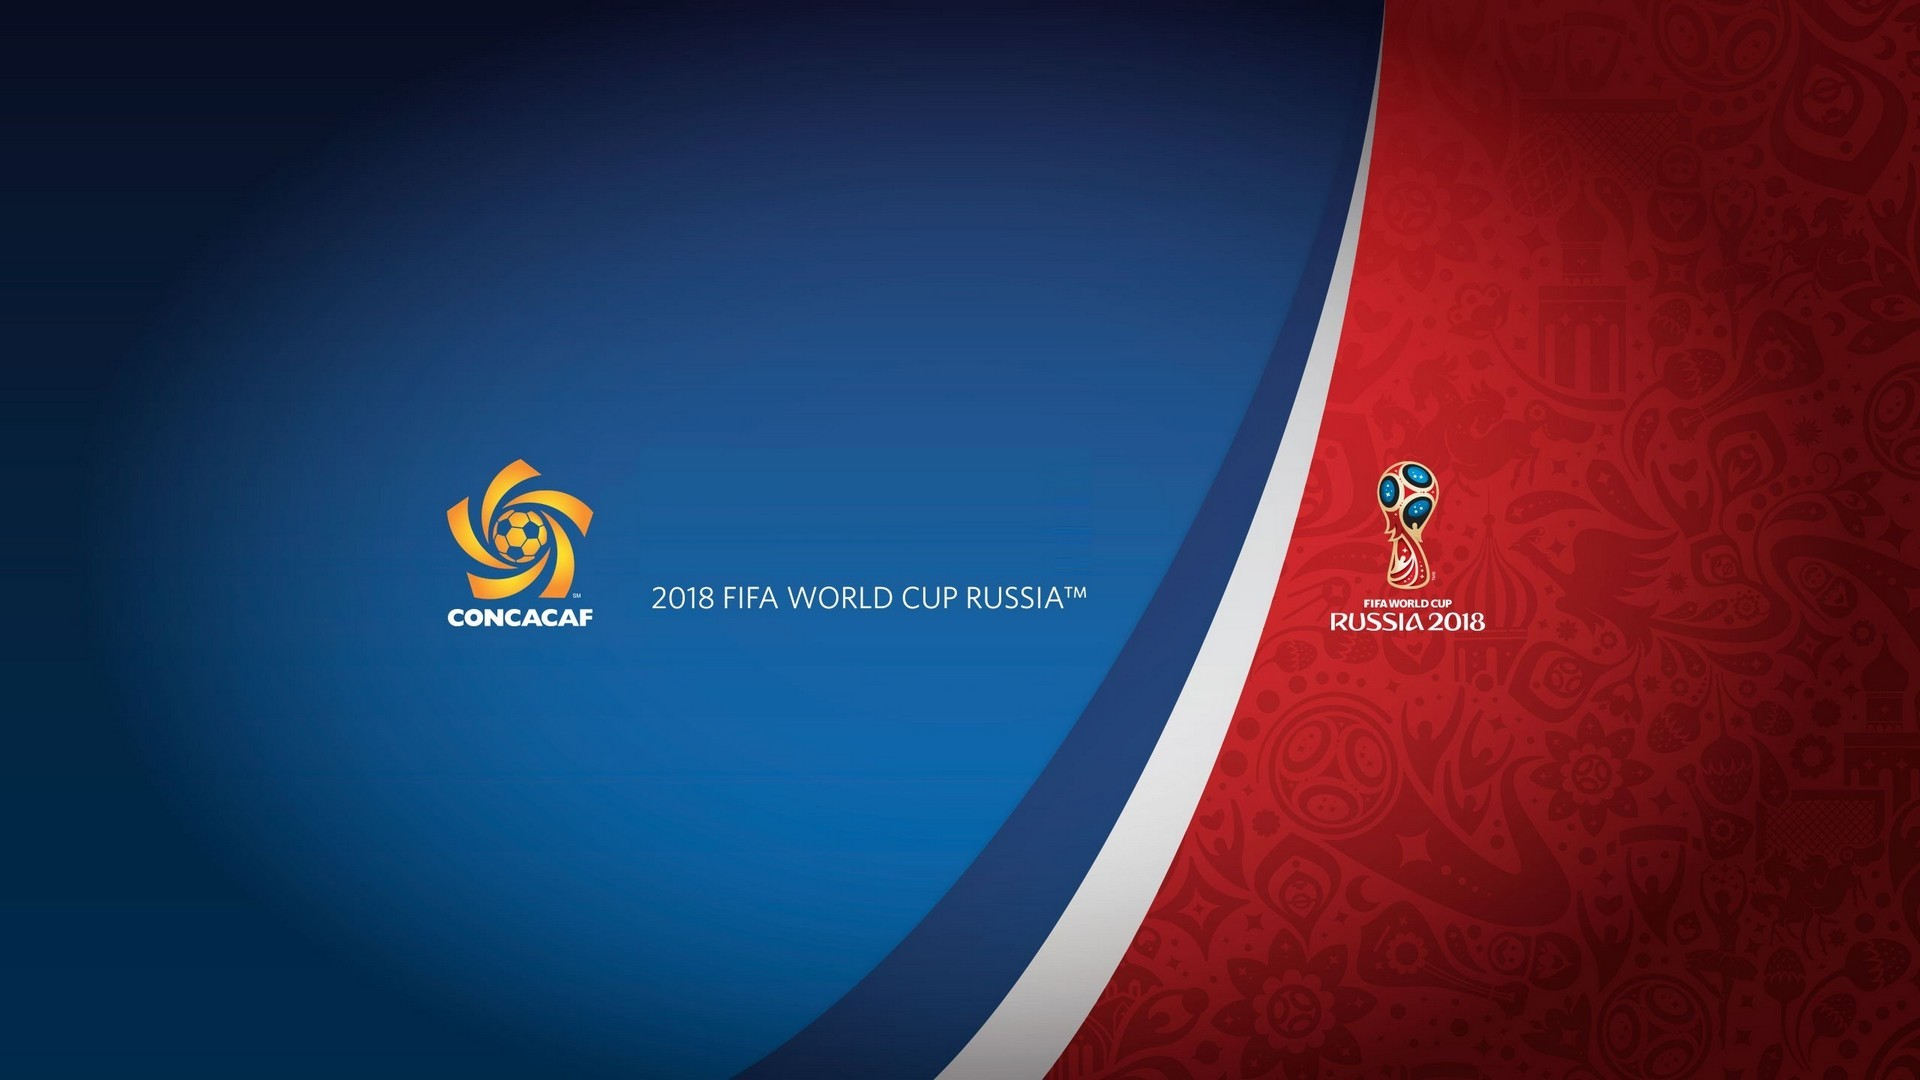 2018 FIFA World Cup Russia HD Wallpaper | Background Image | 1920x1080 | ID:927087 - Wallpaper Abyss